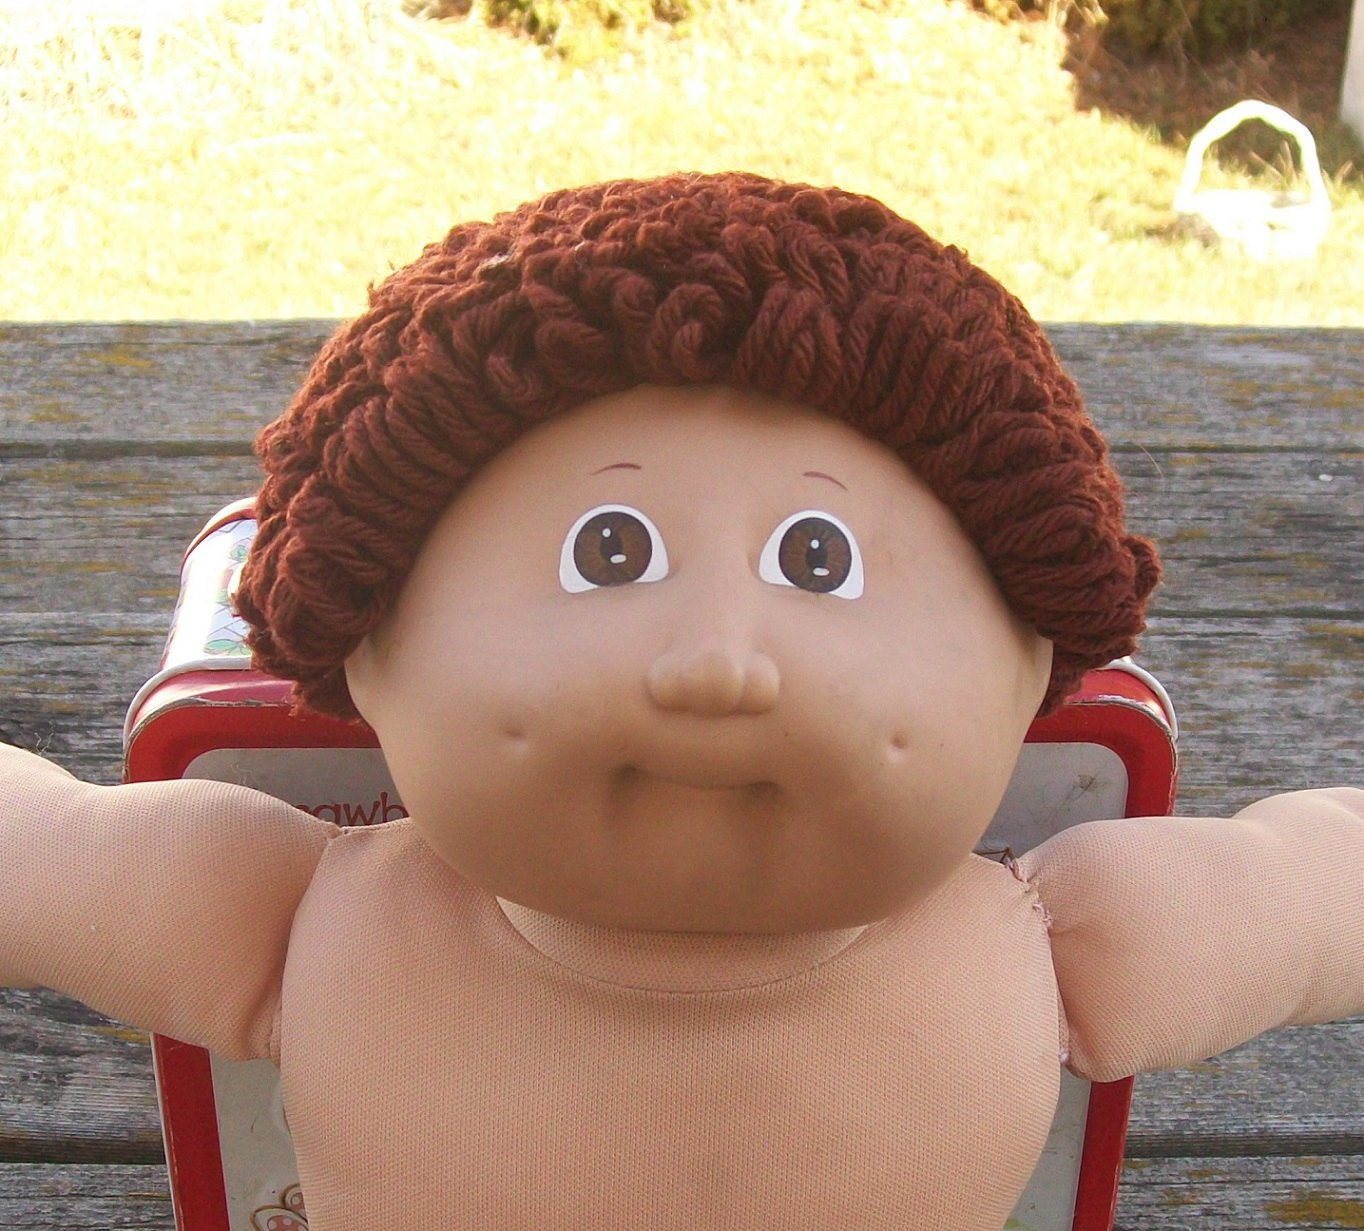 Vintage Cabbage Patch Dolls Inspirational Vintage Cabbage Patch Doll Boy Dark Brown Curly by Of Vintage Cabbage Patch Dolls Fresh Cabbage Patch Kids Vintage Doll Limited Edition 30th